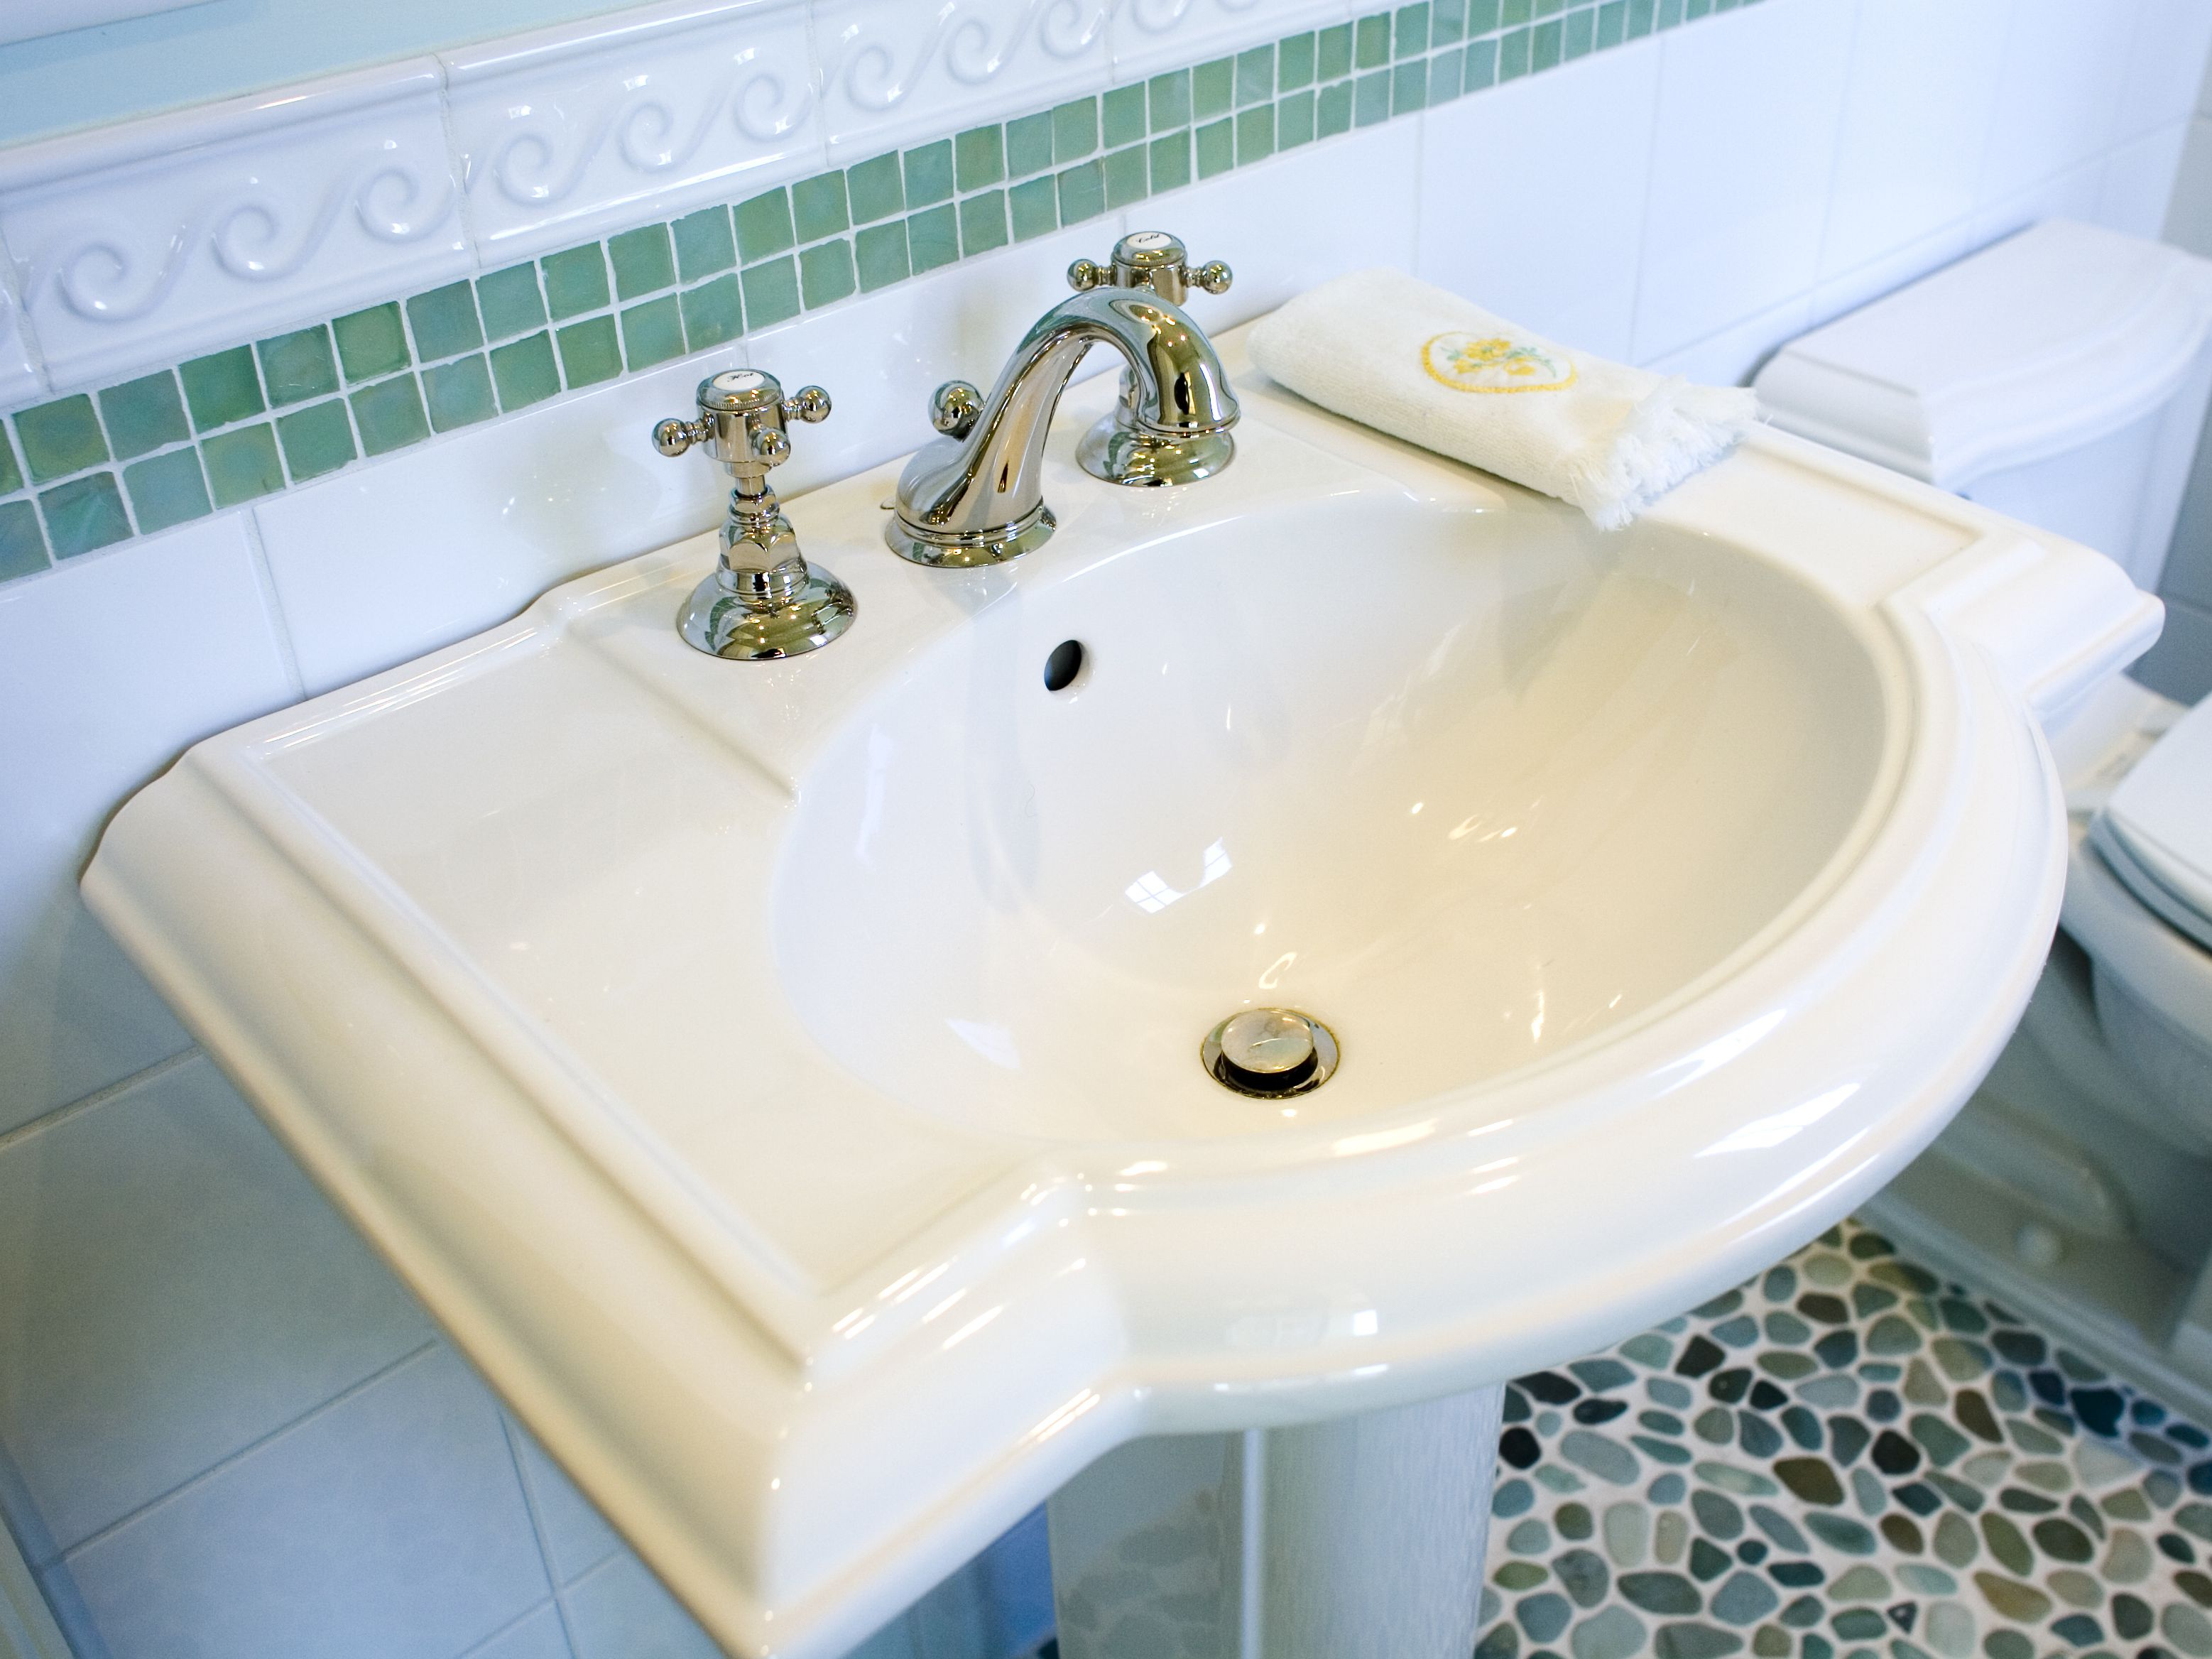 before buying a pedestal sink